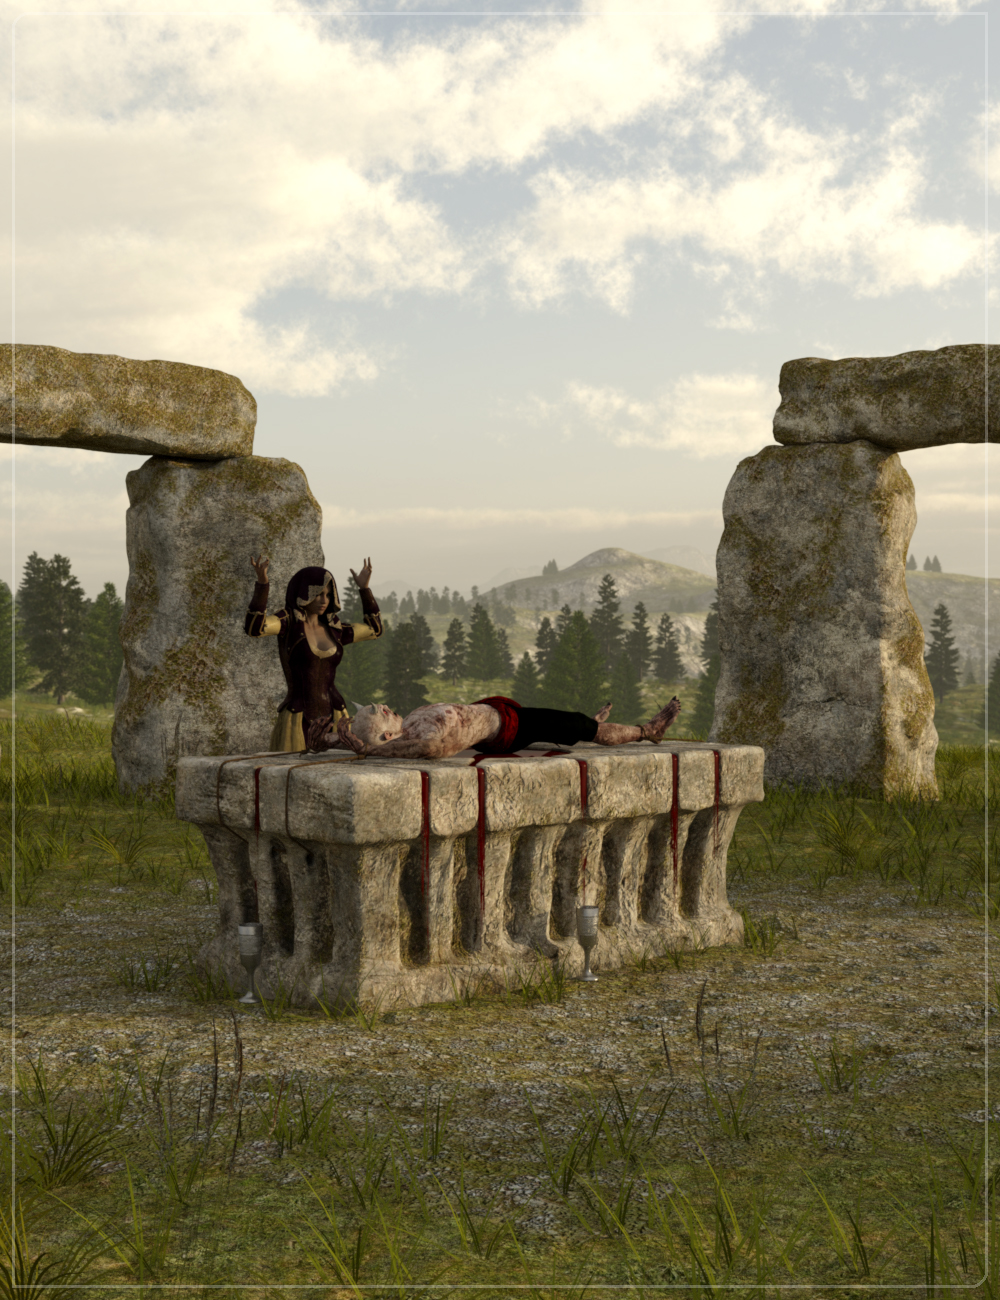 Easy Environments: Witchcraft: Sacrifice by: Flipmode, 3D Models by Daz 3D